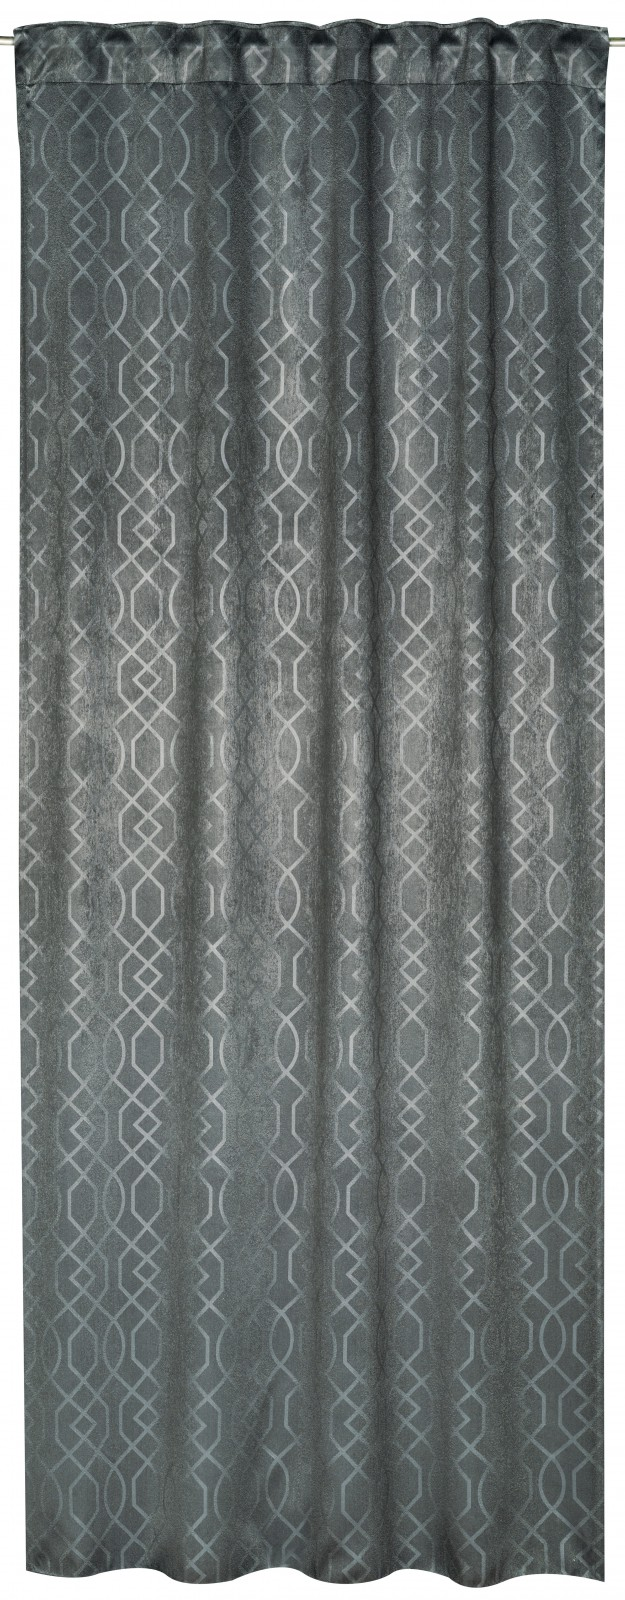 loop curtain equinox design grey blackout fabric 196196. Black Bedroom Furniture Sets. Home Design Ideas